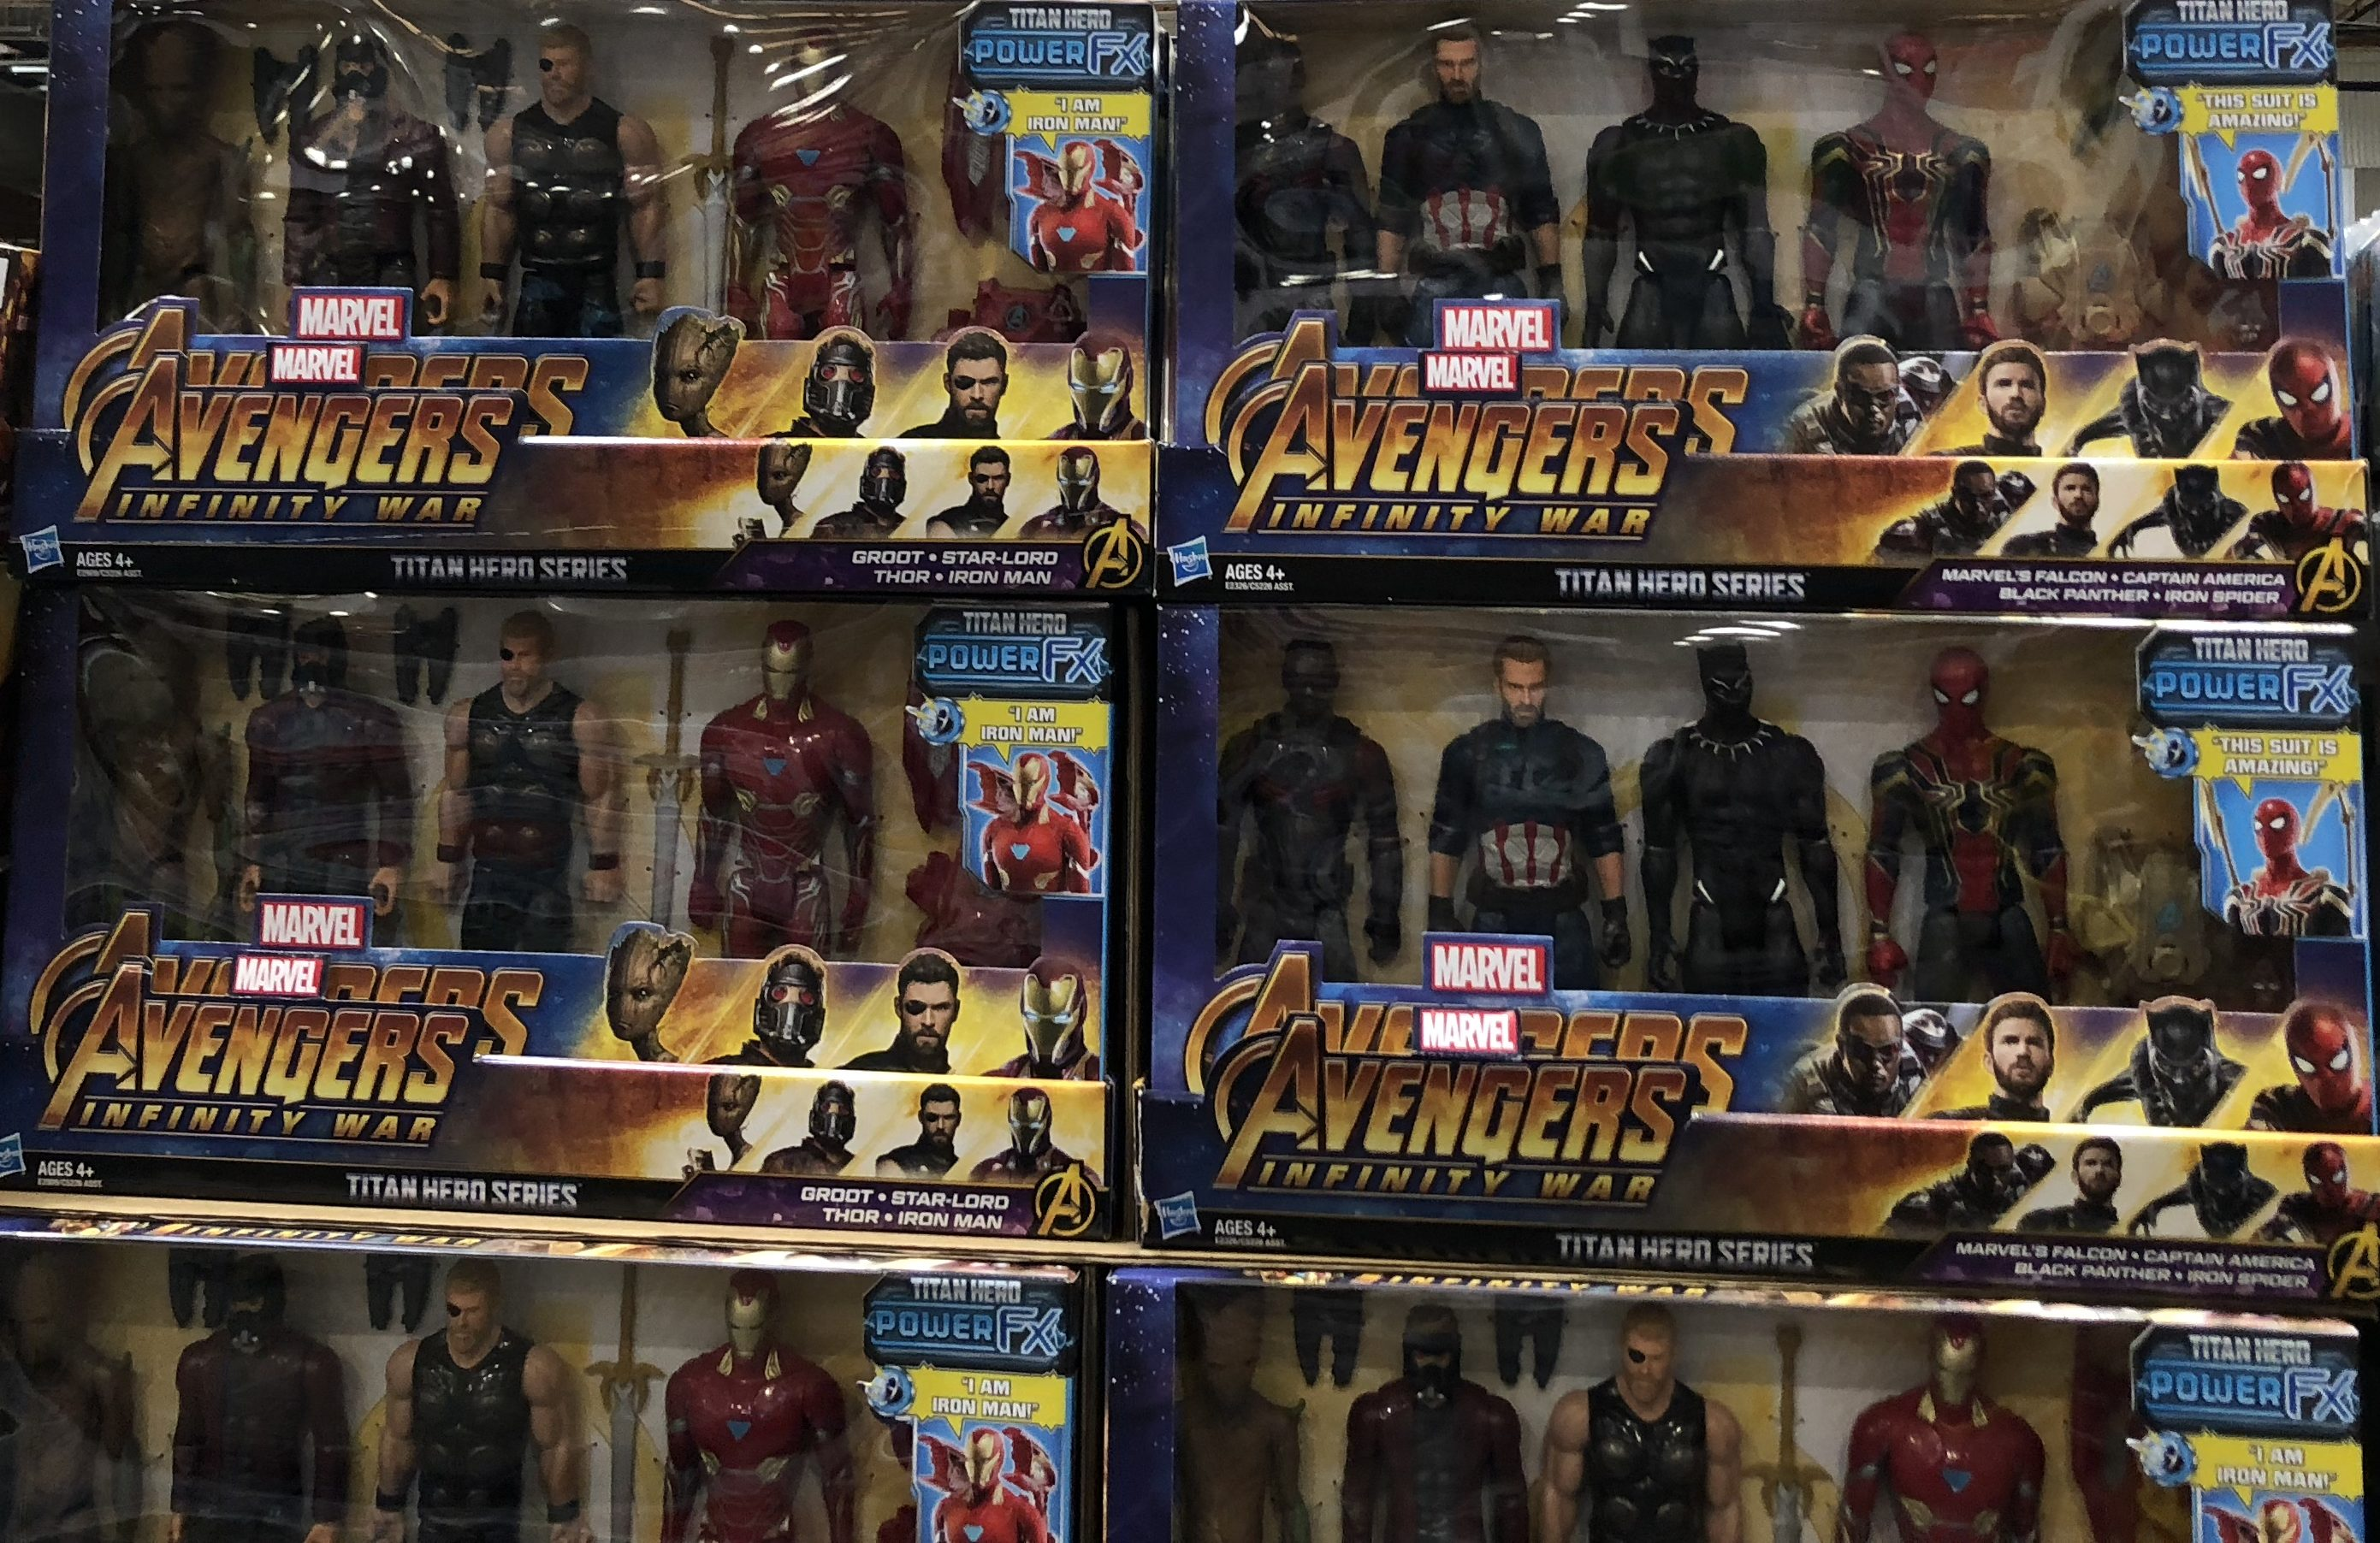 The best holiday toy deals for 2018 include Marvel Avengers Infinity Sets at Costco